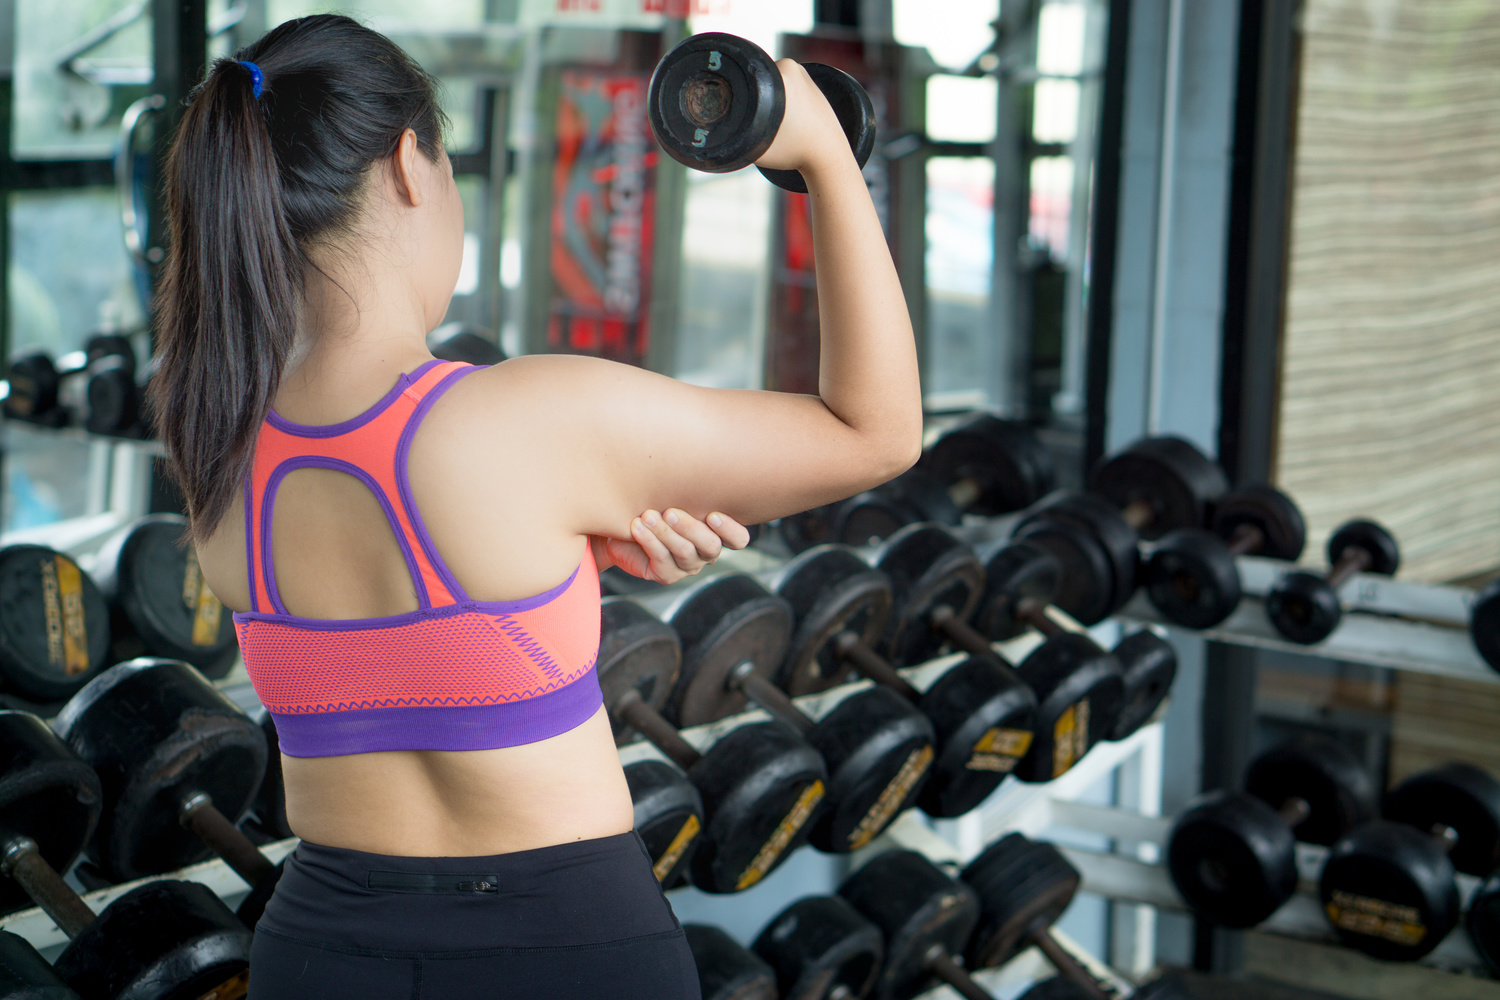 Flabby arms can be caused by a variety of reasons | Shutterstock